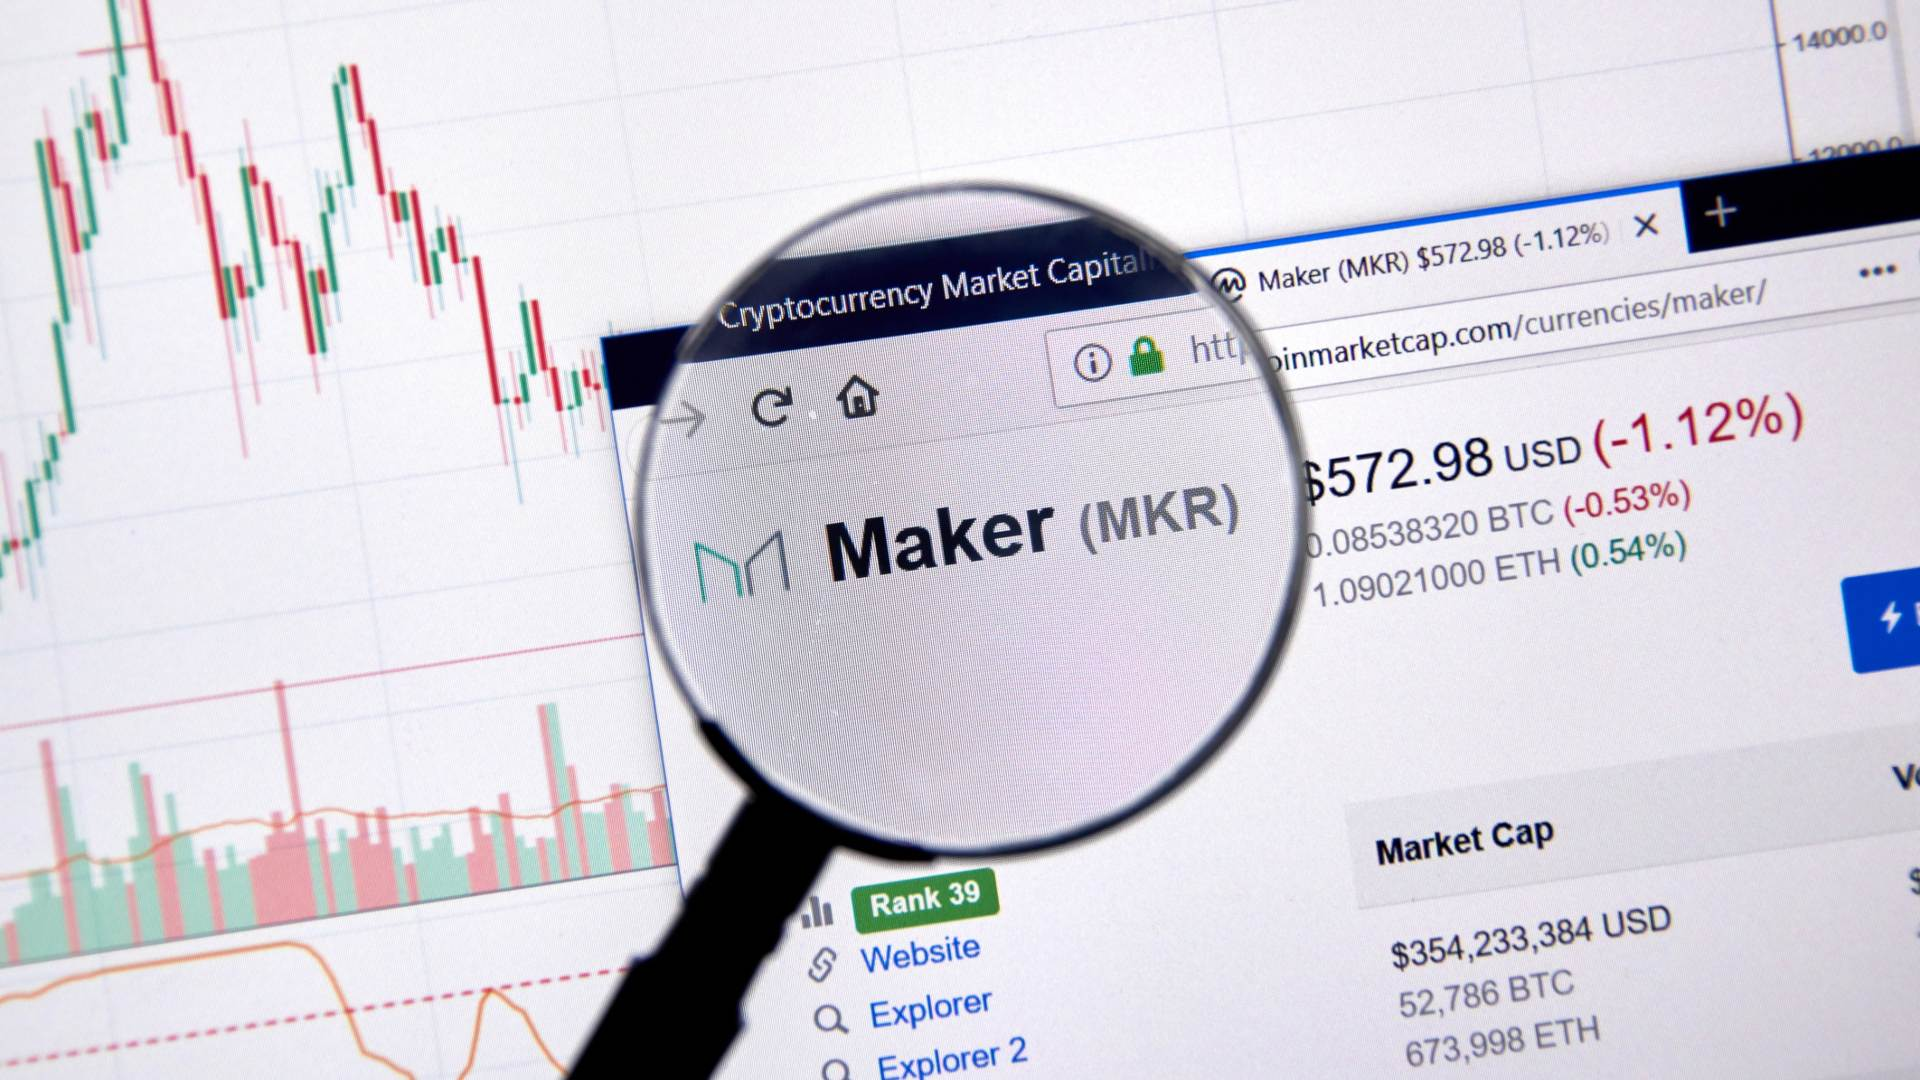 New updates from MakerDAO as DAI overtakes SAI